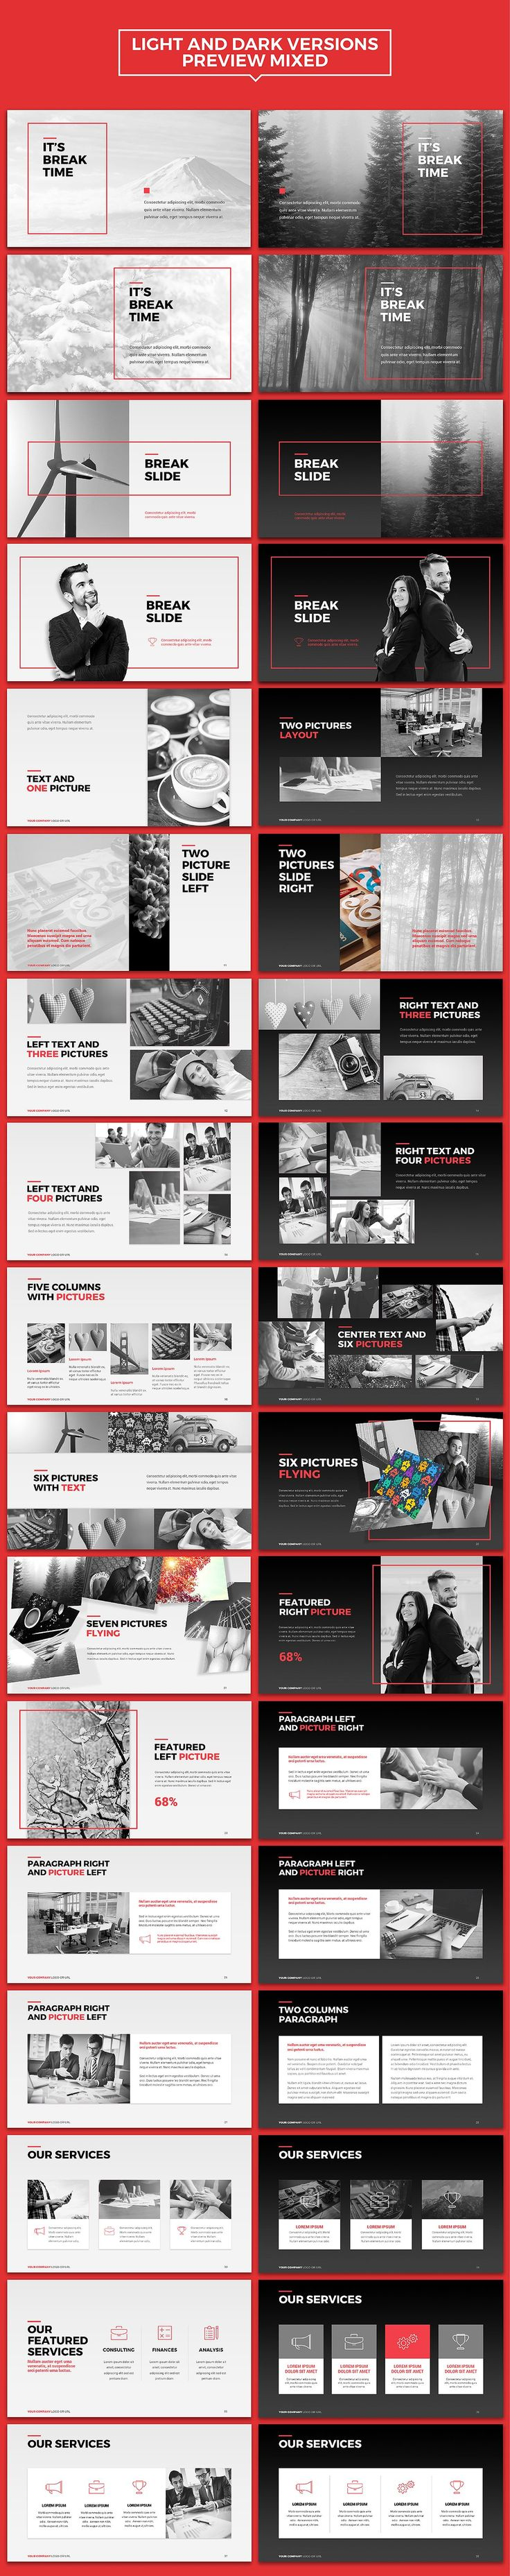 NEO Multipurpose Powerpoint Template by INTERARTIVITY on @creativemarket